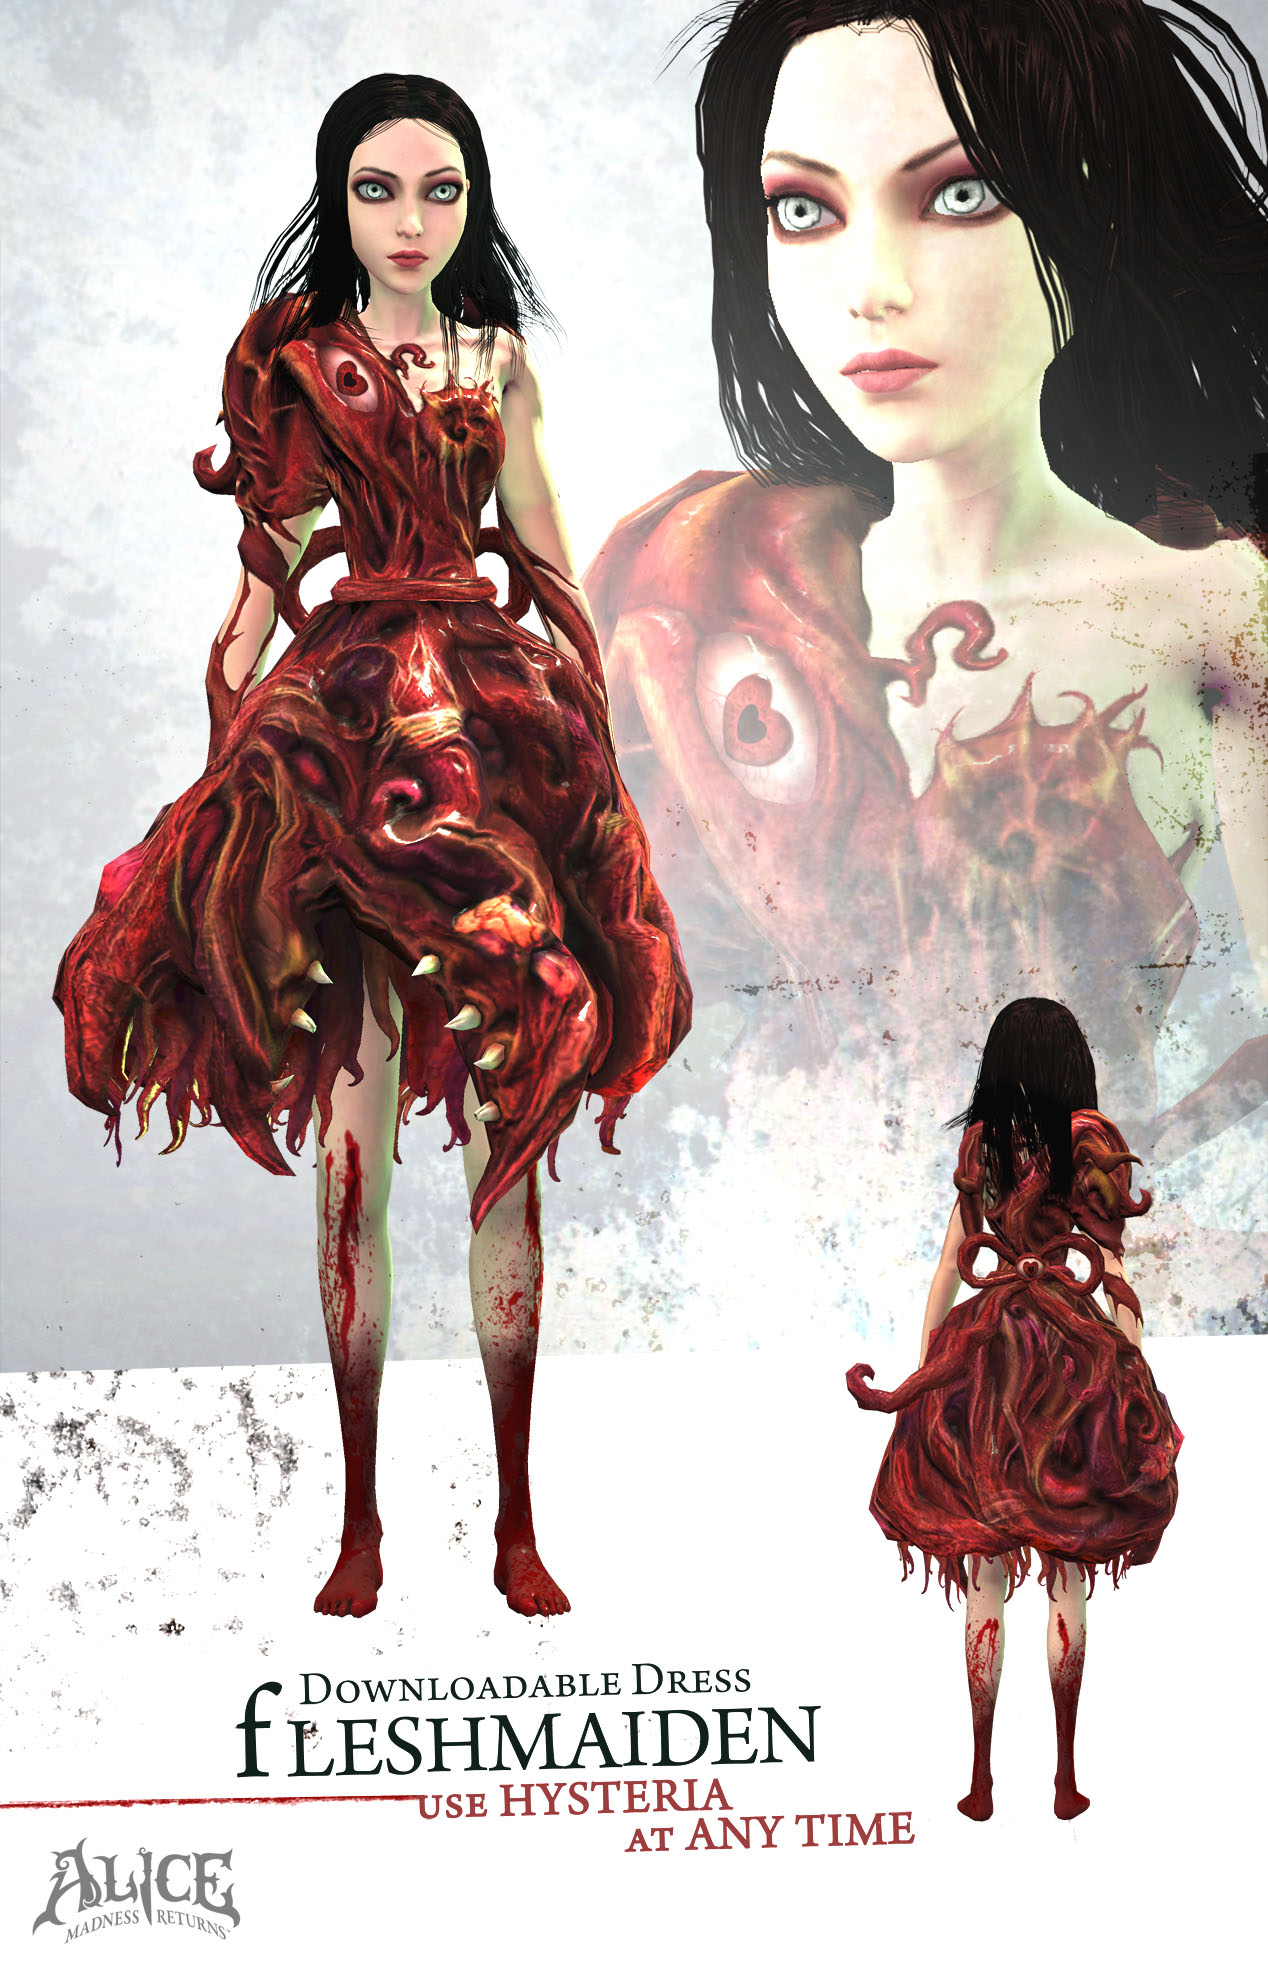 Pretty Dresses For Alice Madness Returns Launch DLC